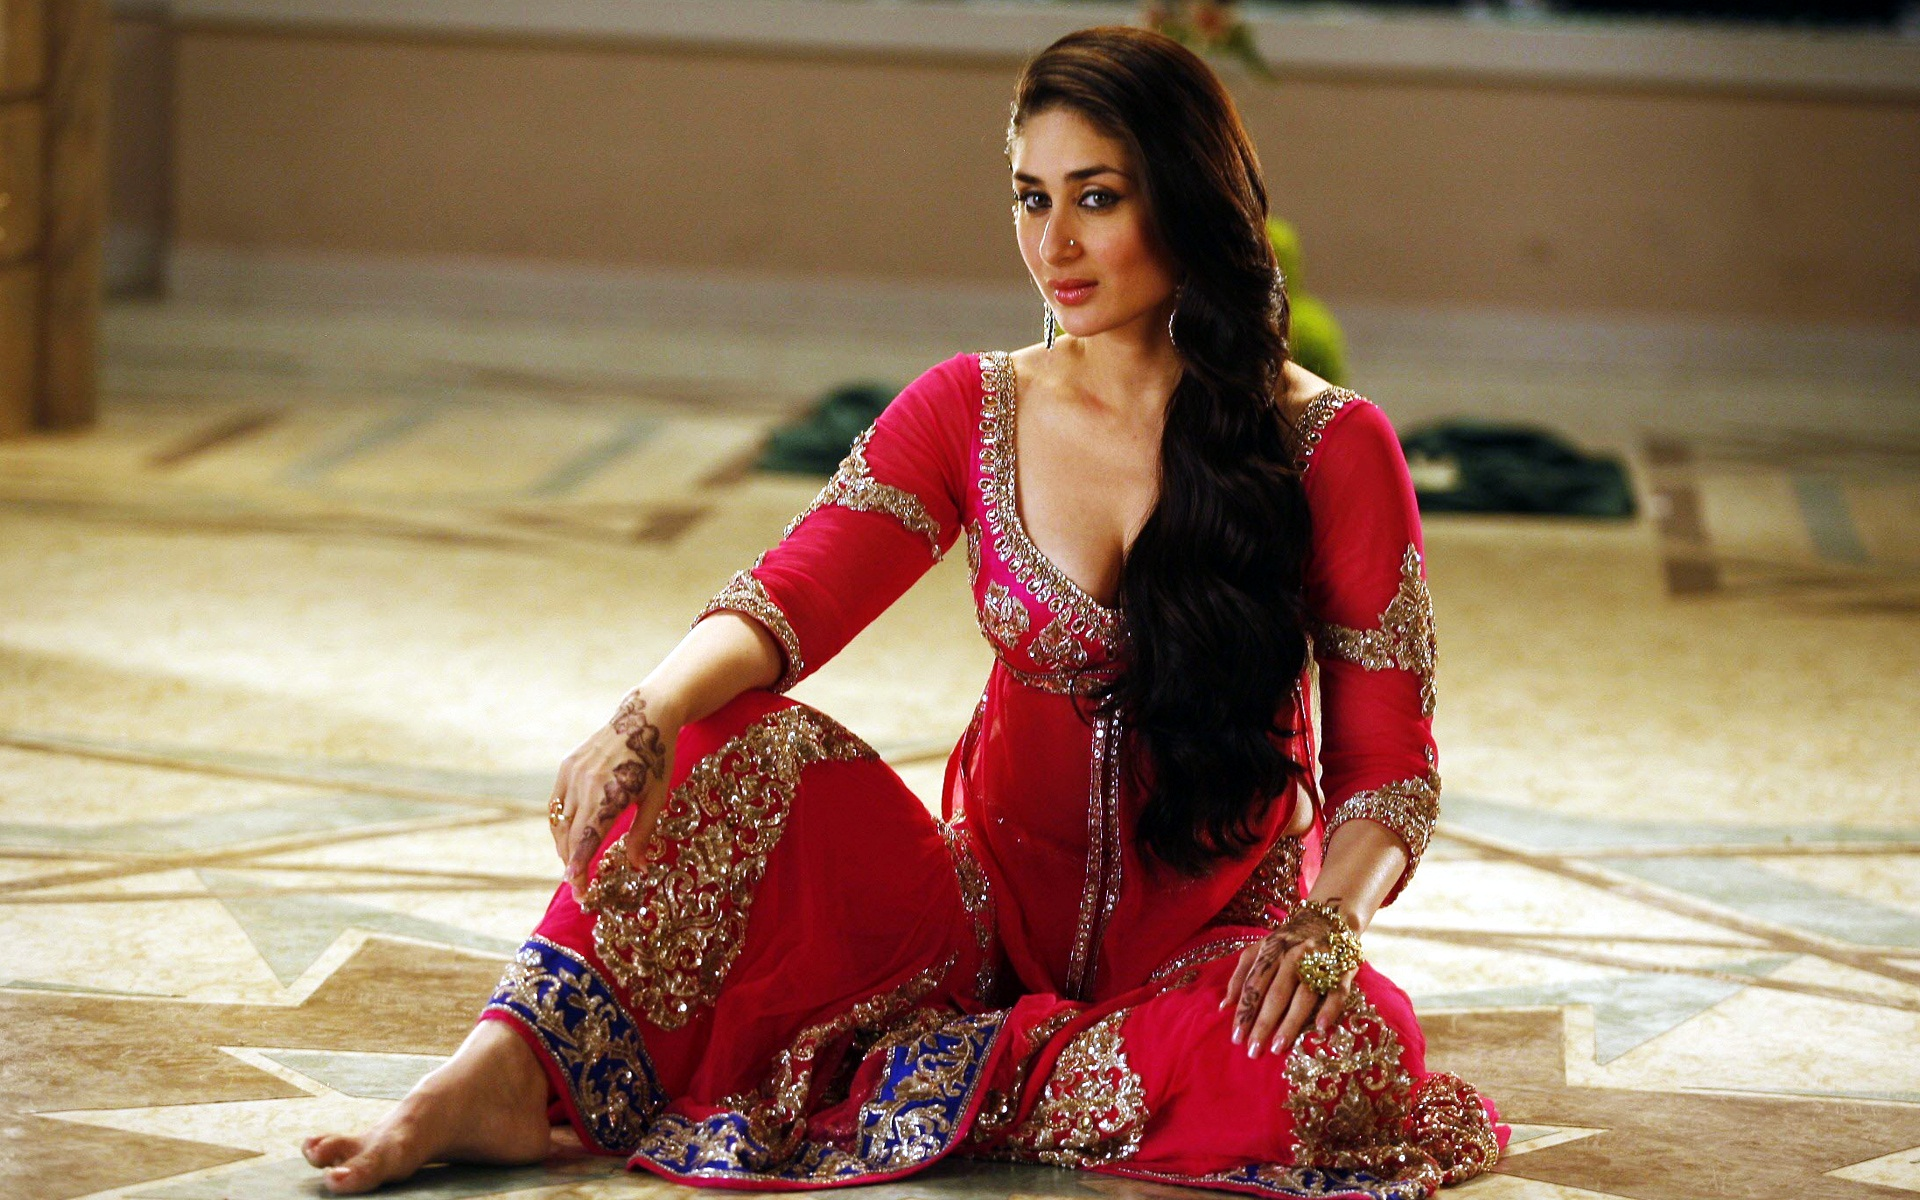 Kareena Kapoor in Agent Vinod 1211.8 Kb